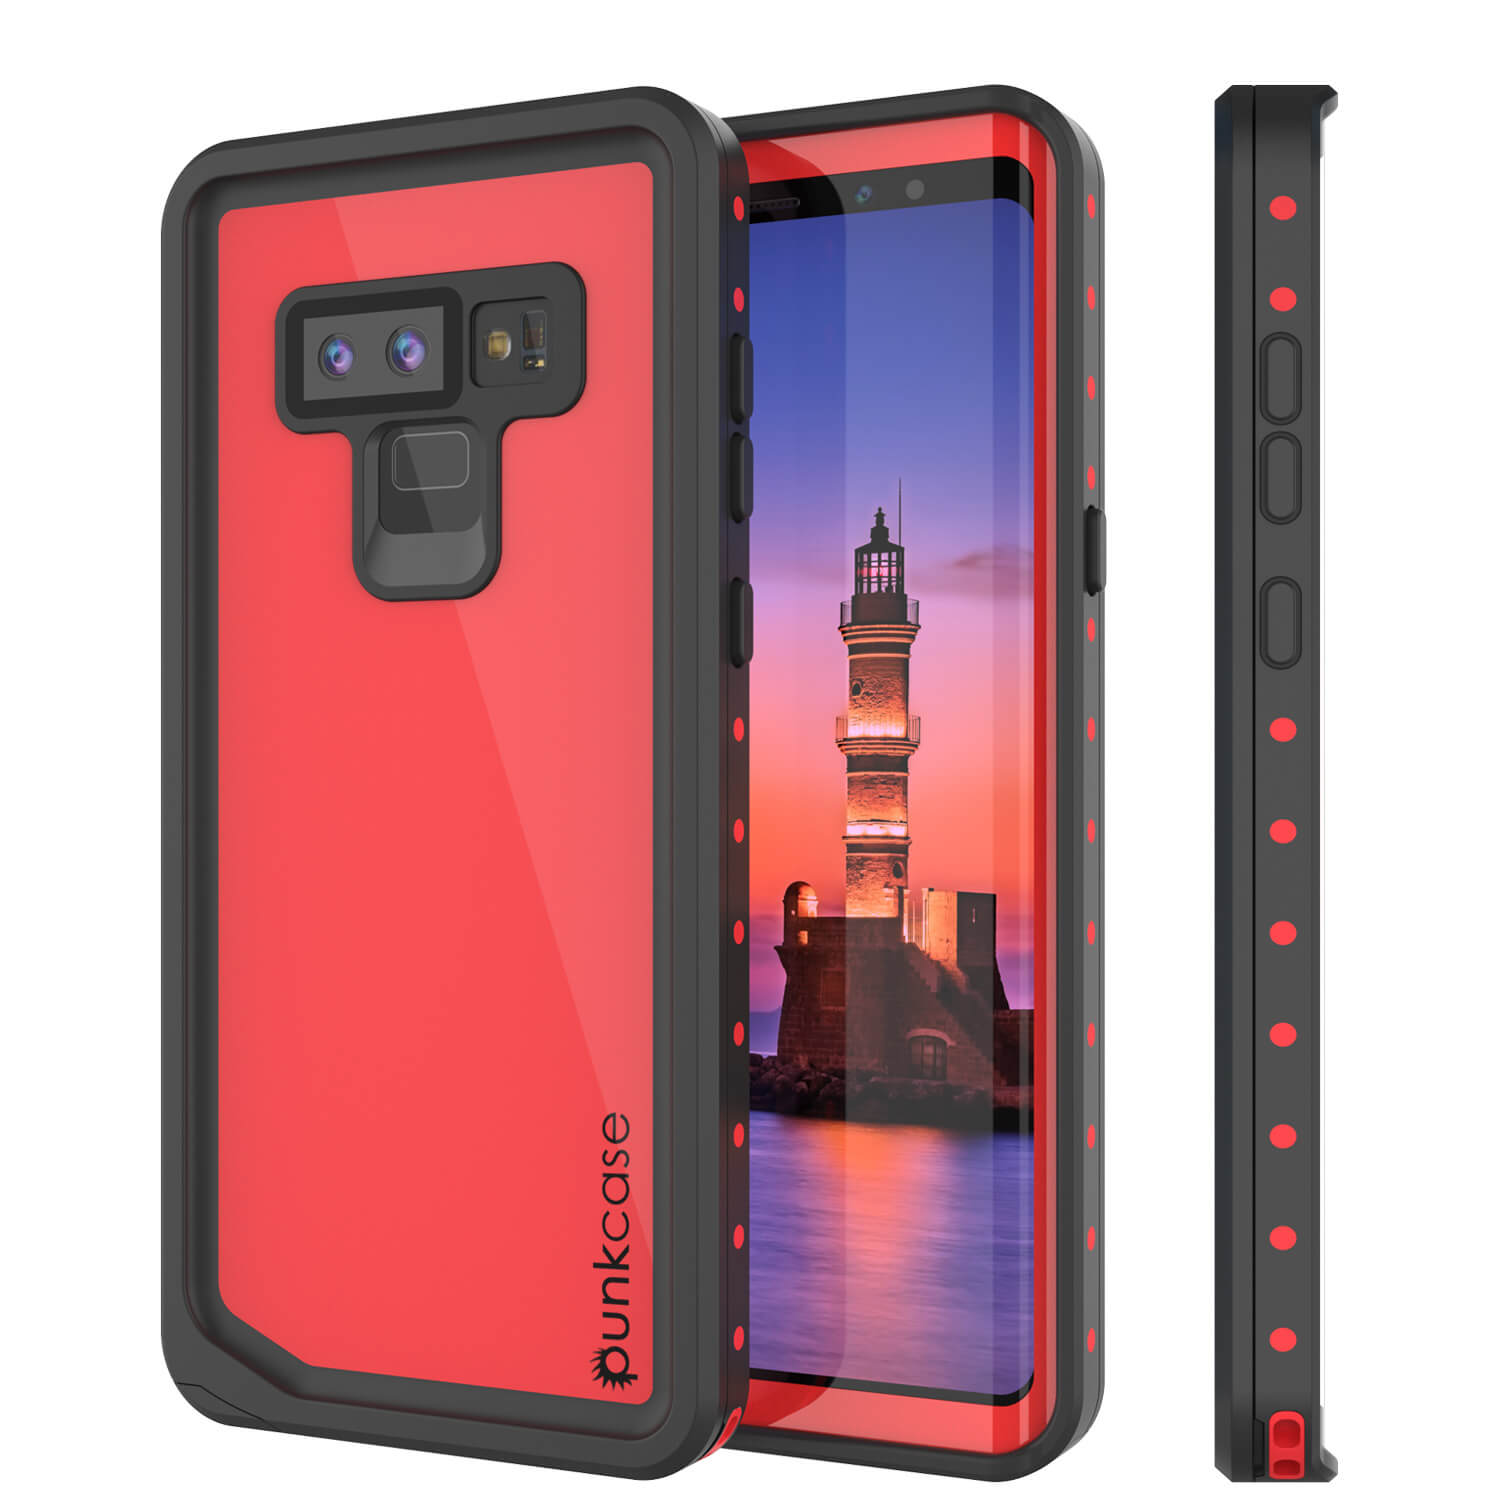 Galaxy Note 9 Waterproof Case, Punkcase Studstar Red Series Thin Armor Cover